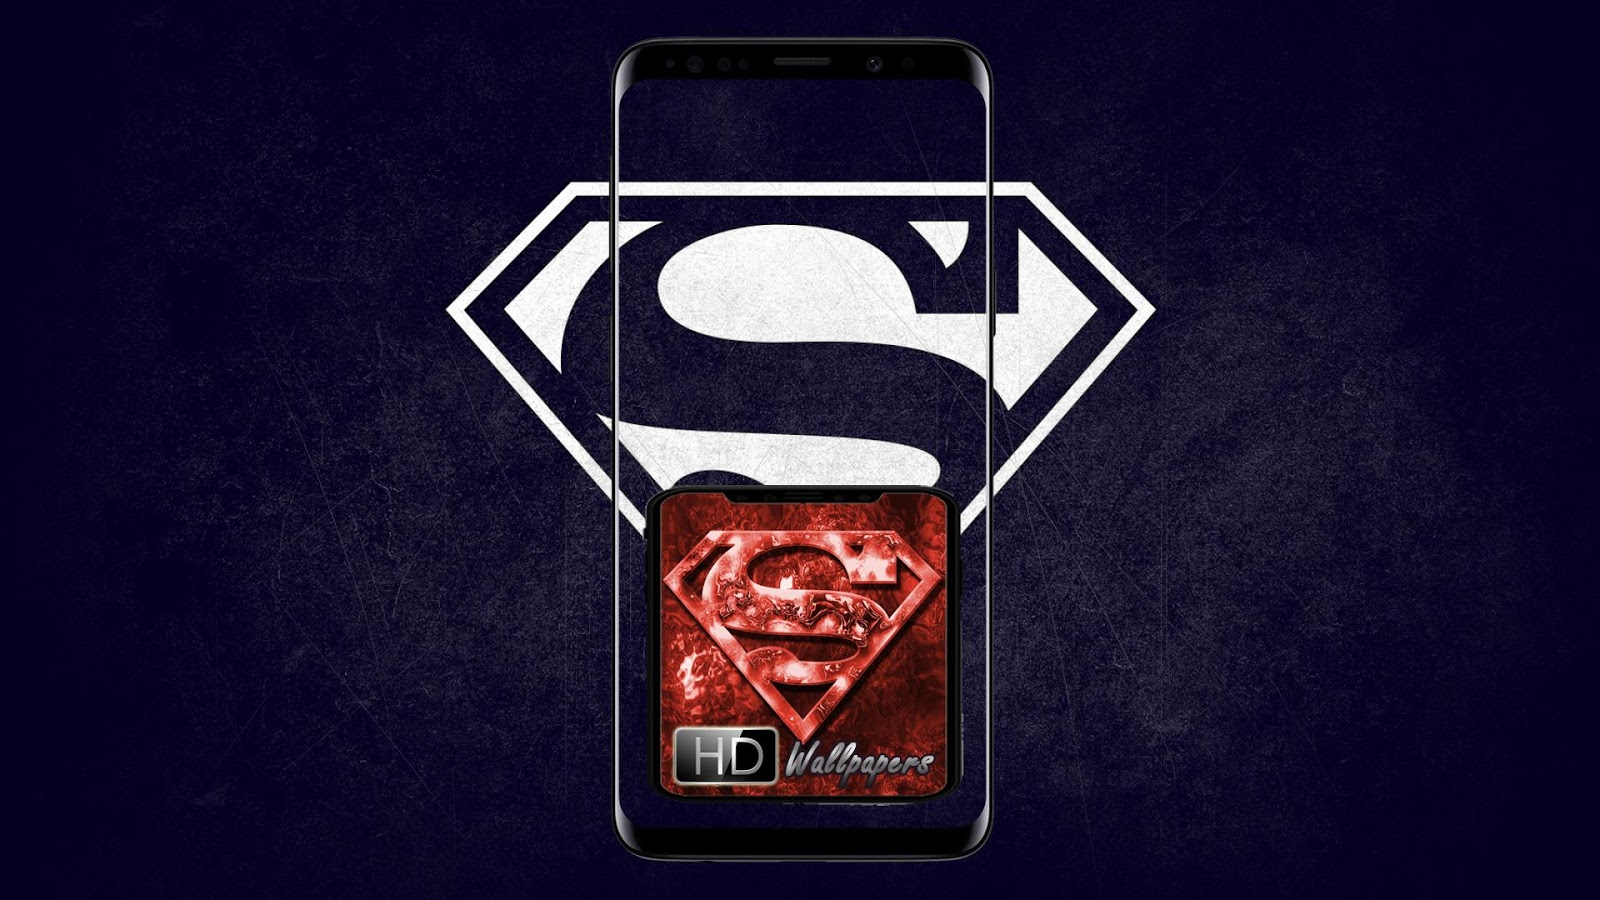 Superman Hd Wallpapers 1 0 0 Apk Download Android Personalization Apps